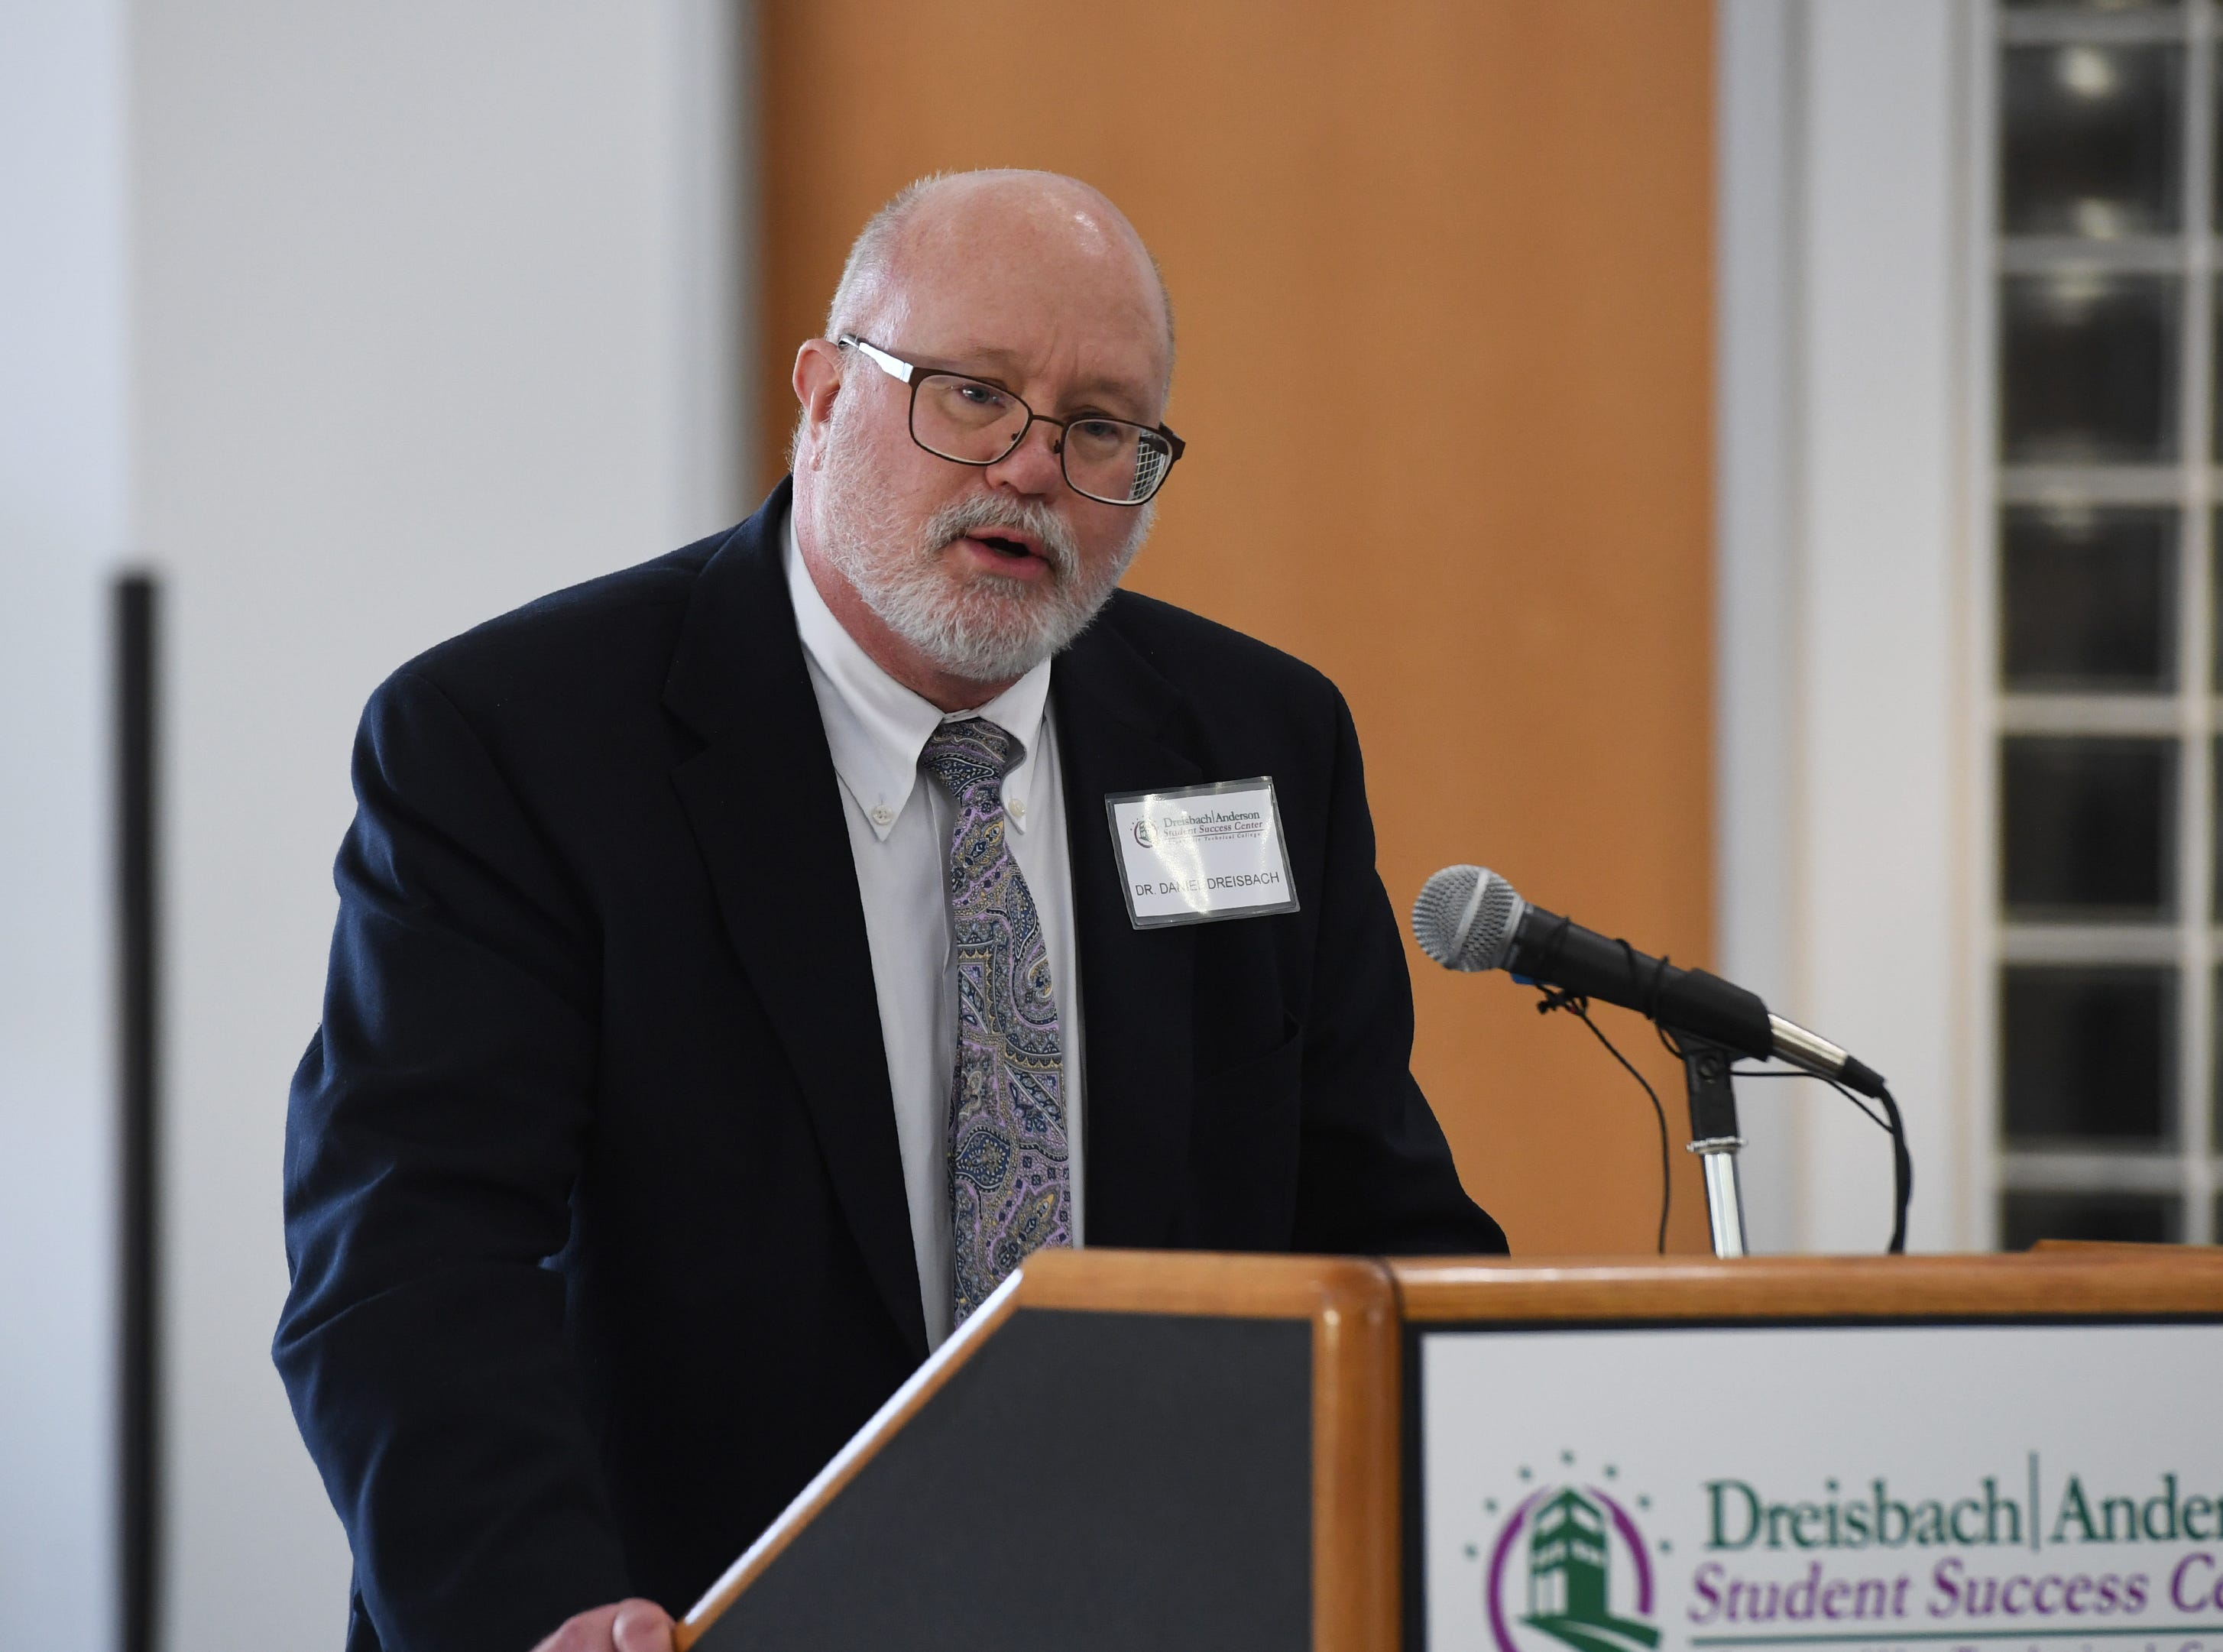 Dr. Daniel Dreisbach, a graduate of Greenville Tech., talks to the crowd at Greenville Technical College Wednesday, Nov. 28, 2018. Dodie Anderson, a former classmate of Dreisbach's, donated $2 million, which will be used for The Dreisbach/Anderson Student Success Center.